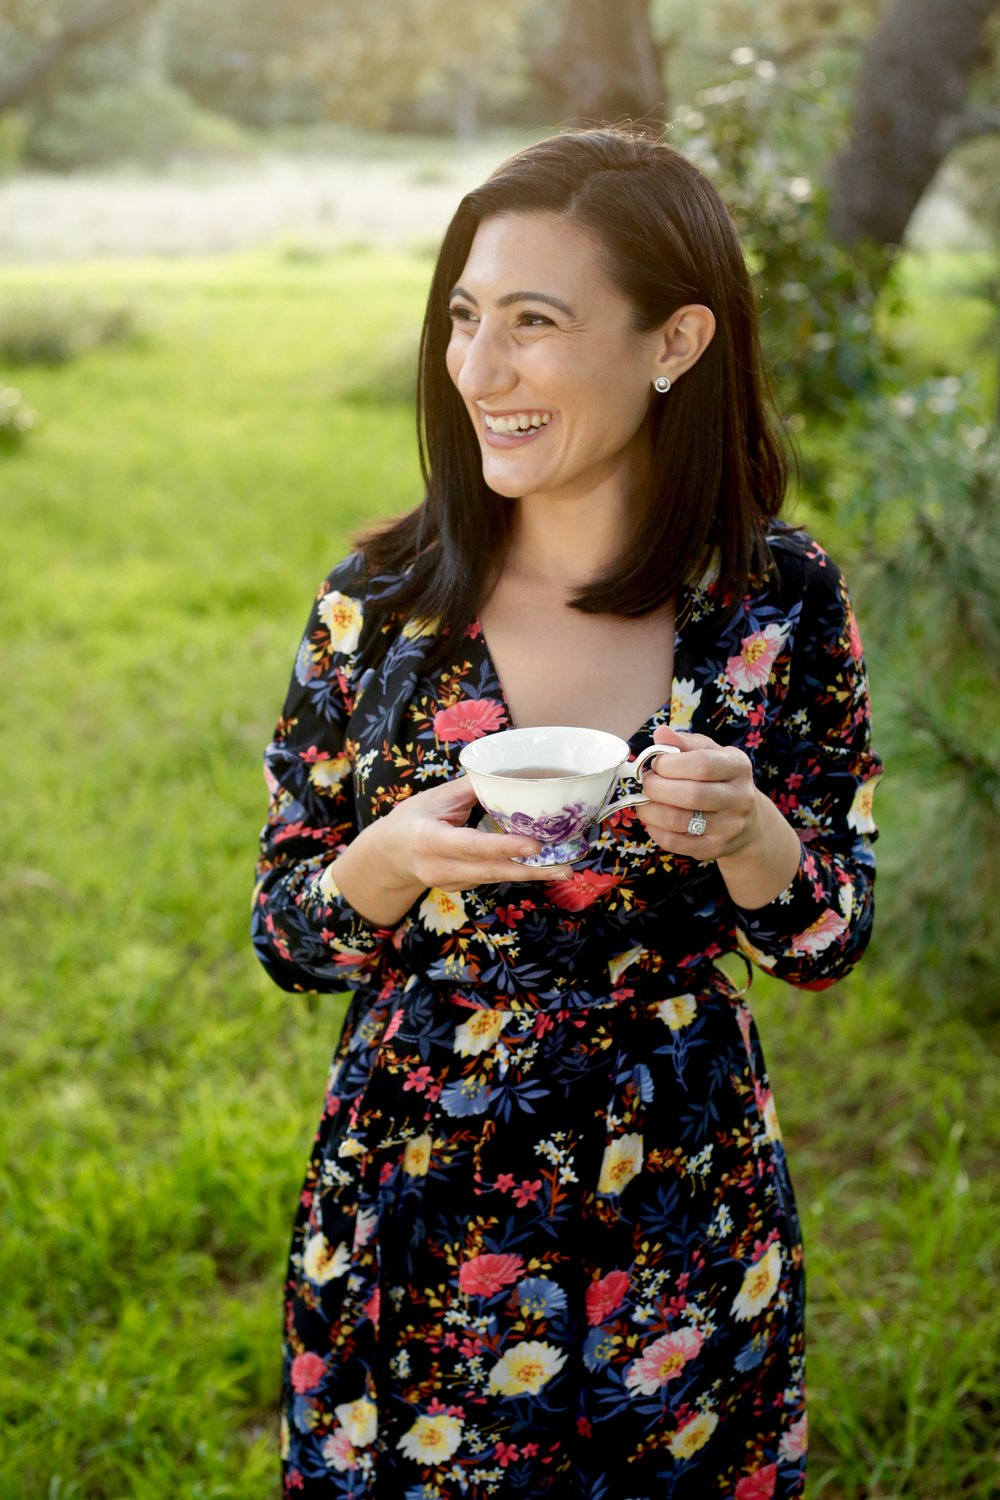 Check out our Q&A with Daniella about her Web Design Experience - Daniella talks about her personal journey of finding clarity, happiness and purpose. She shares the struggles she faced leaving her stable teaching career to pursue her one true passion - tea...